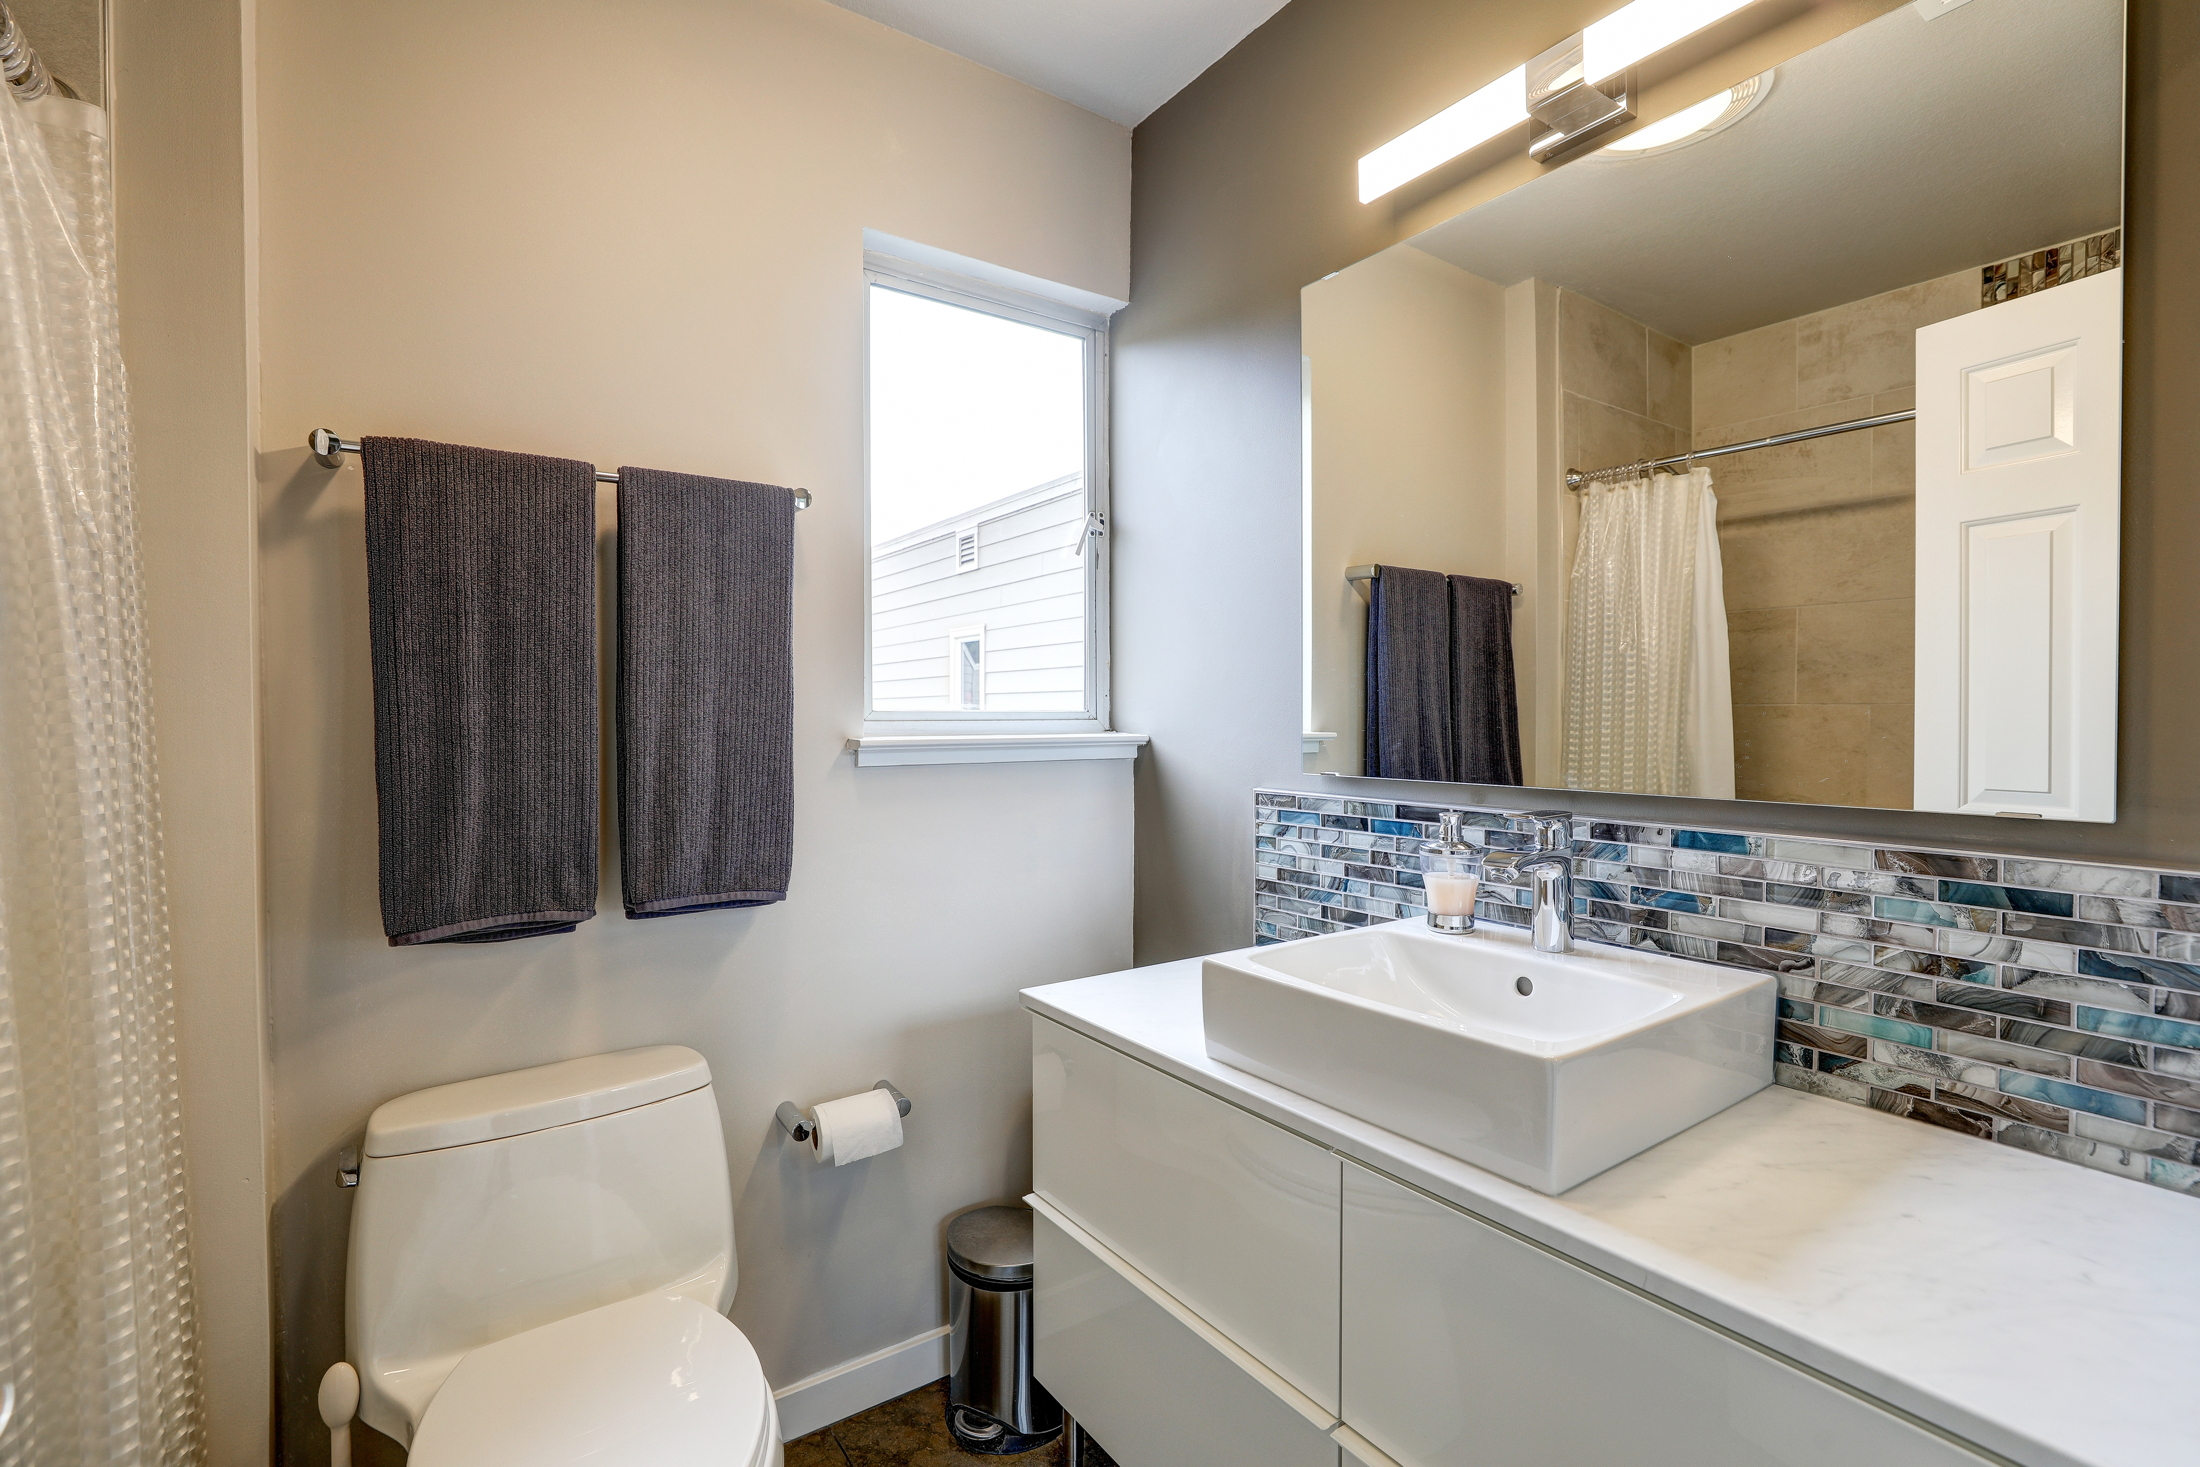 8Parkview 21 - Allie Fornesi at Own Marin with Compass - Corte Madera Realtor.jpg